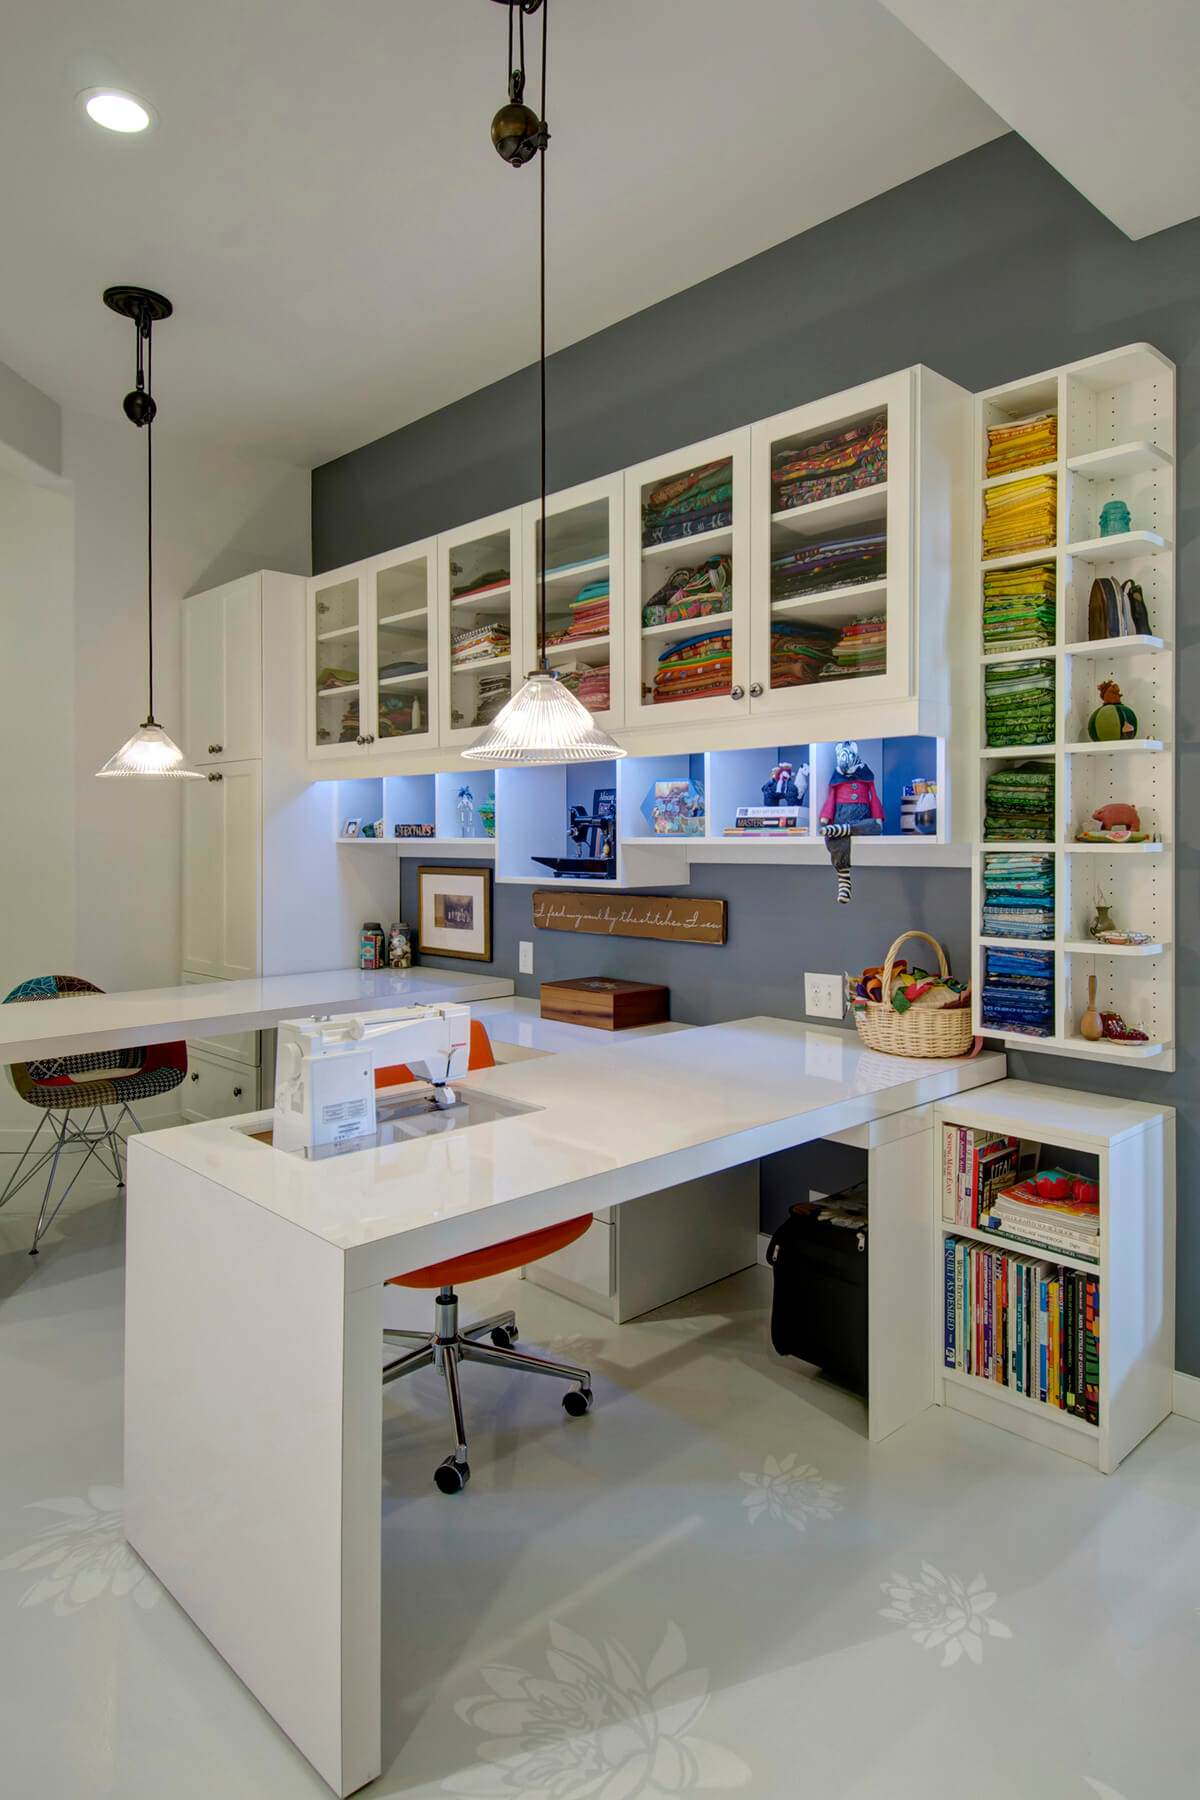 Charmant Spacious Sewing Room In Contemporary Design In Whit And Grey With Tall  Ceilings.